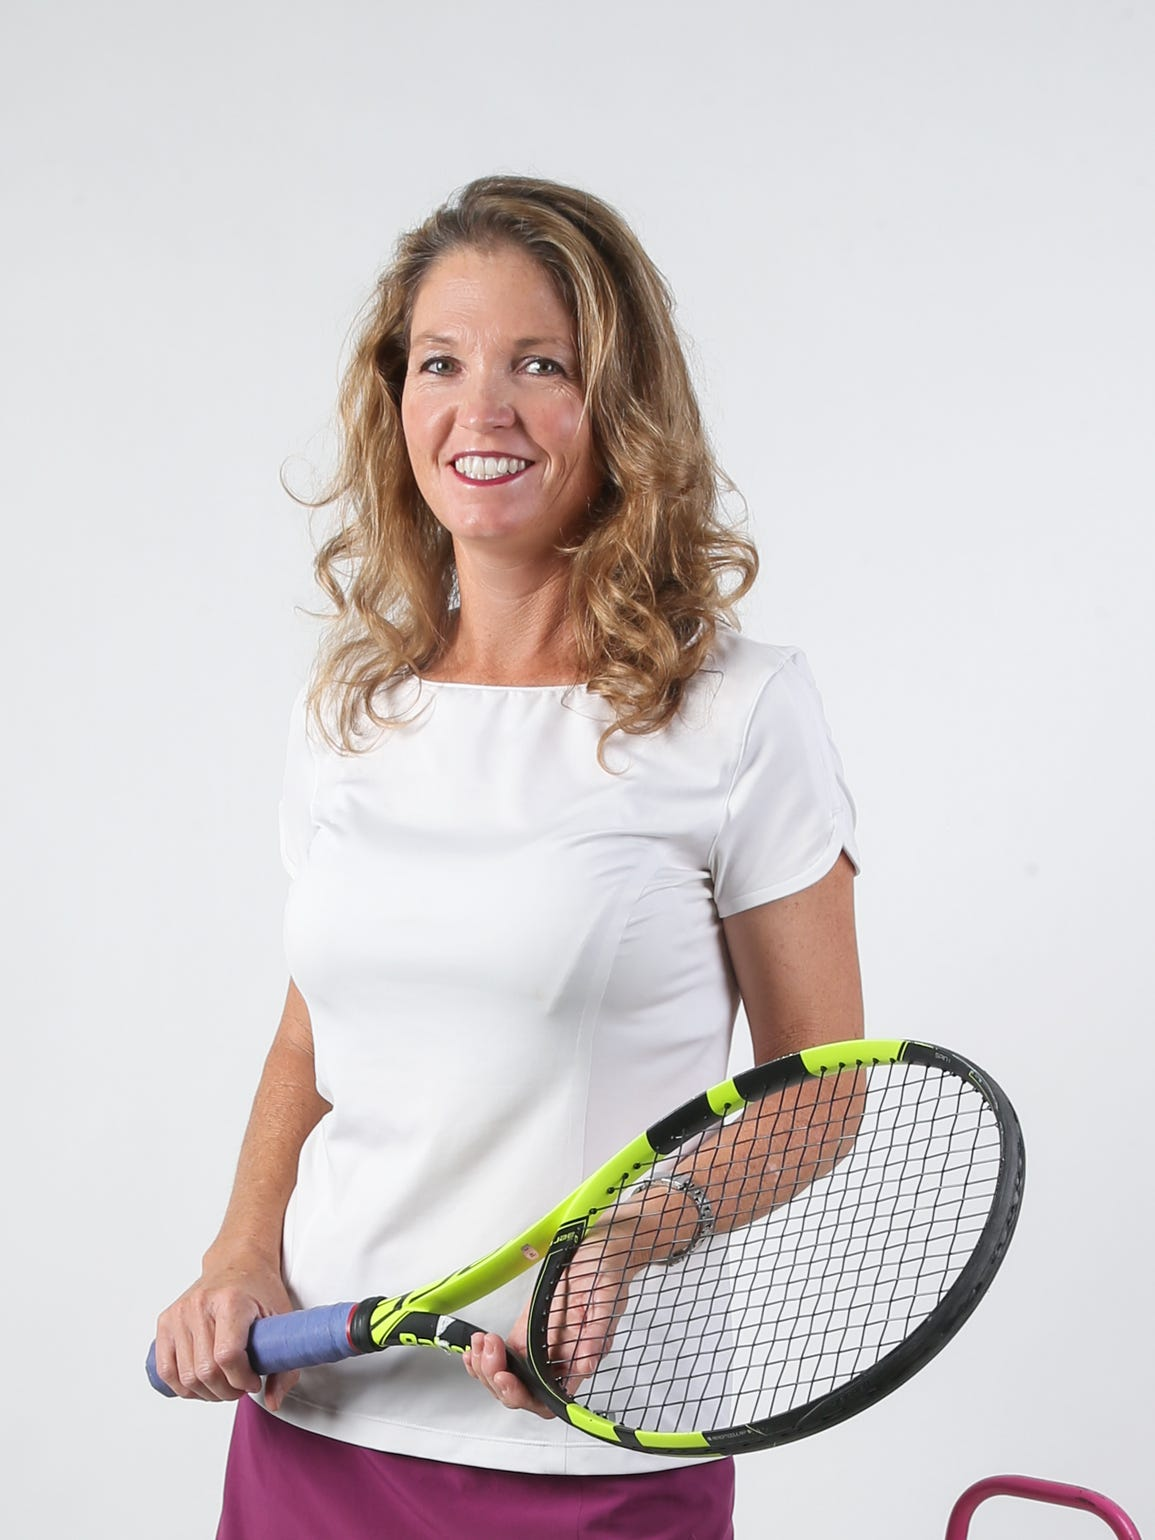 Courtney Nagel is the Director of Tennis at Bentwood